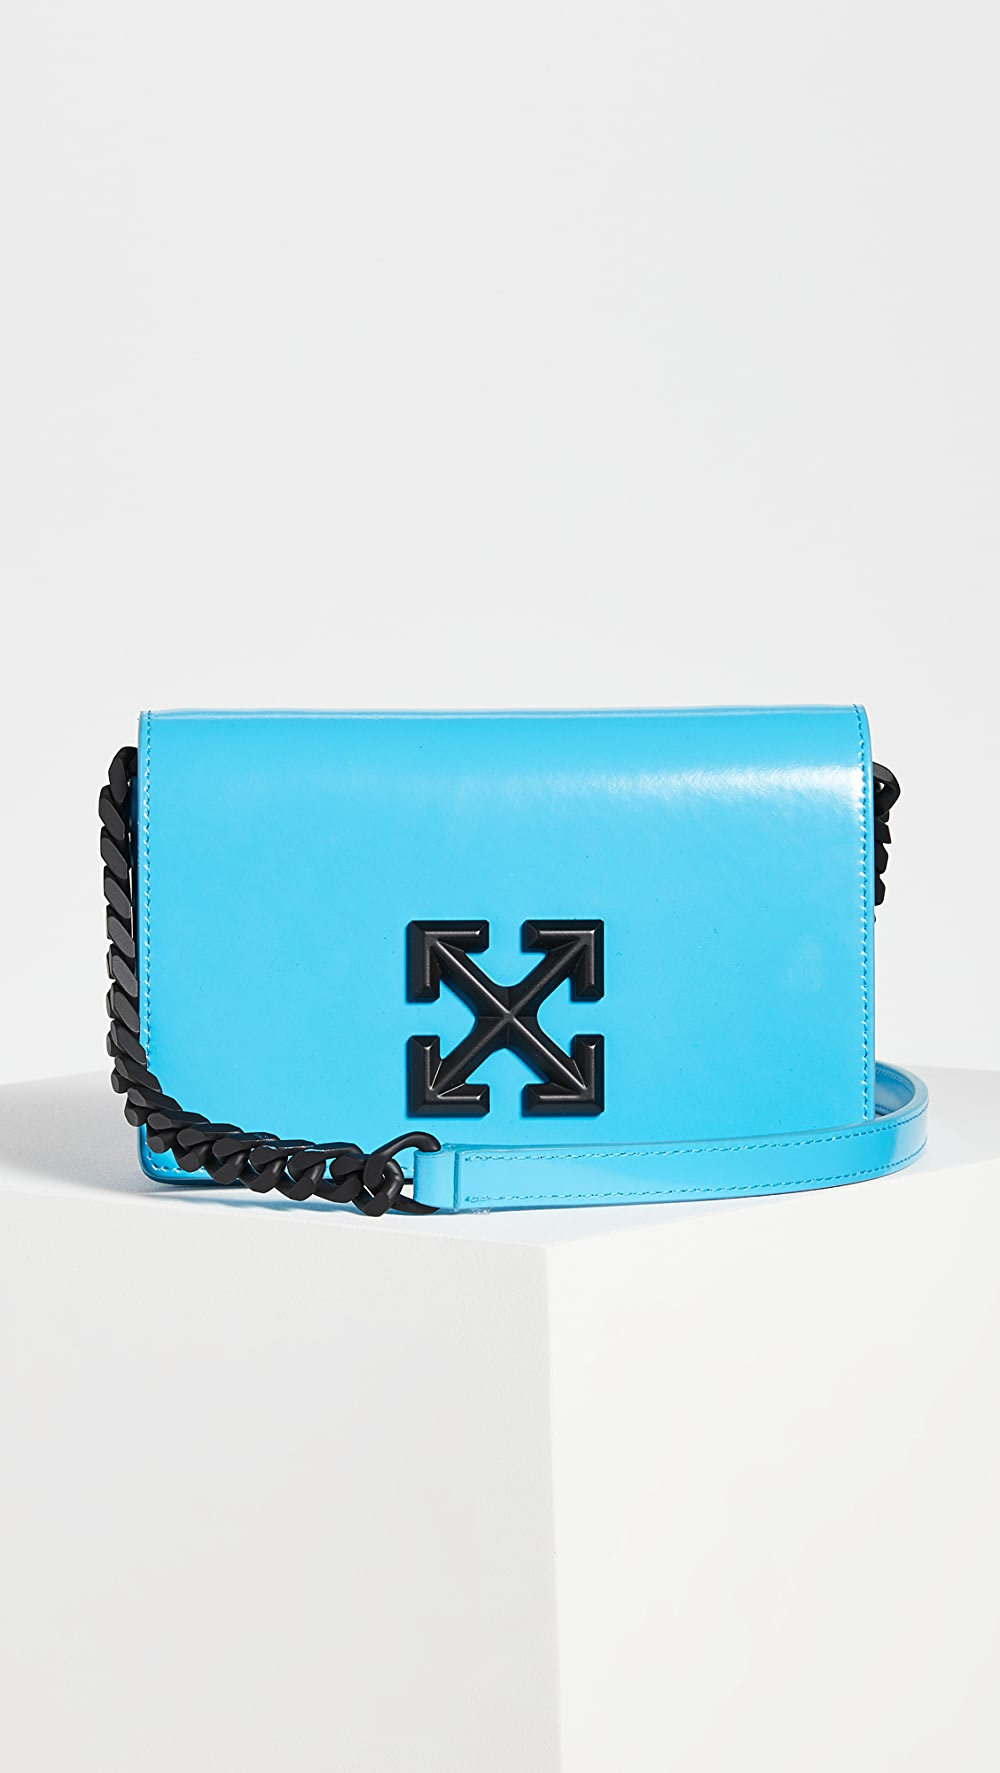 Purposeful Off-white - Mirror Jitney 0.5 Bag Commodities Are Available Without Restriction